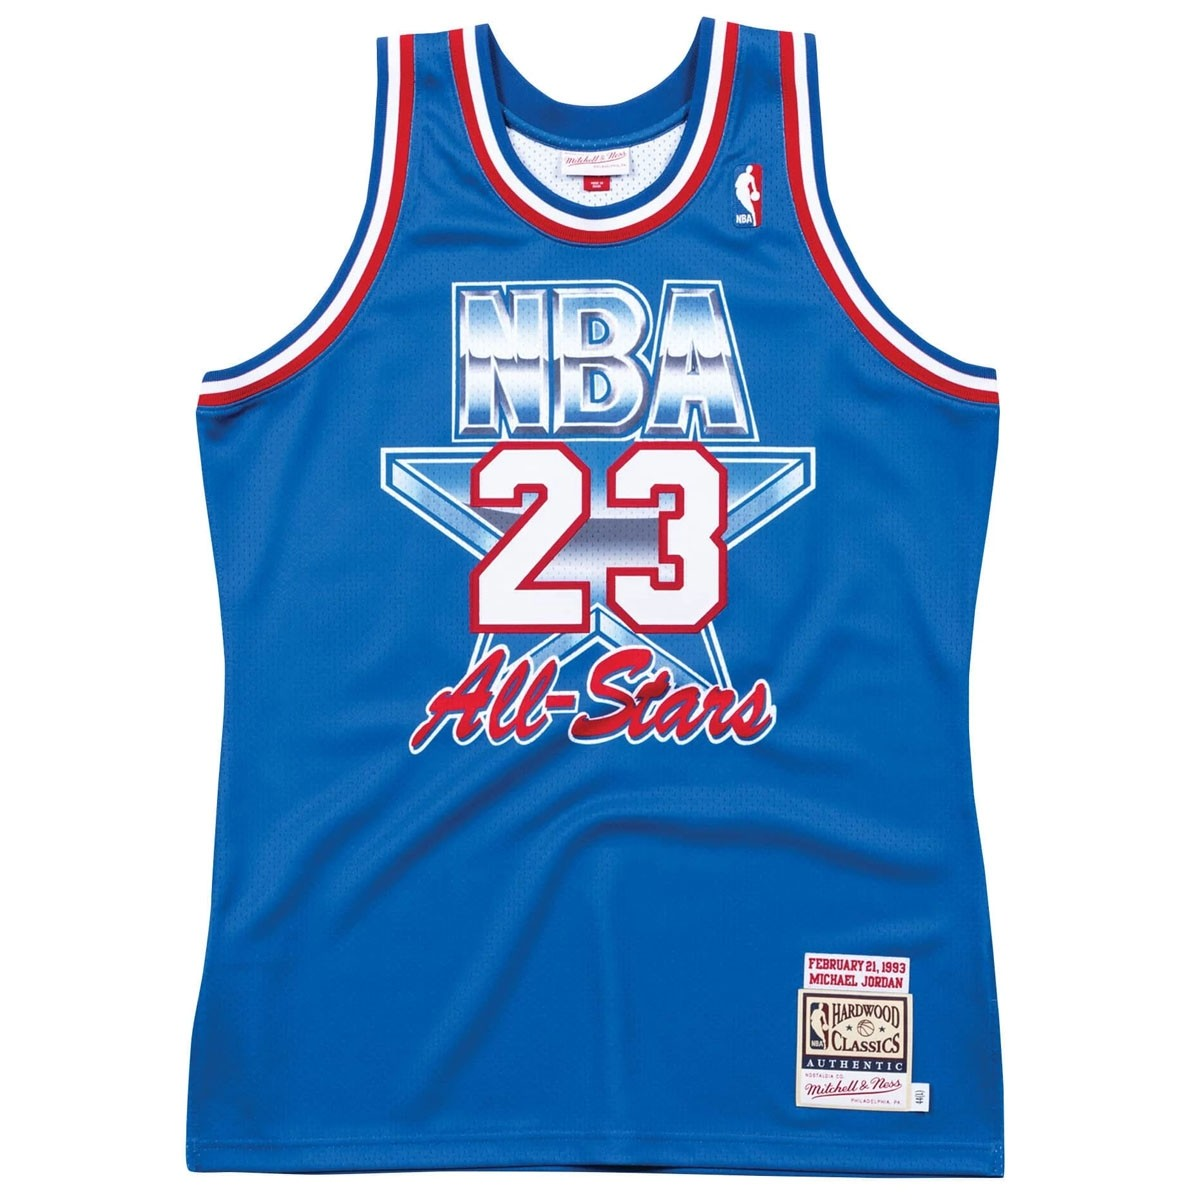 Mitchell & Ness Jordan Authentic Jersey 'All-Star 93'